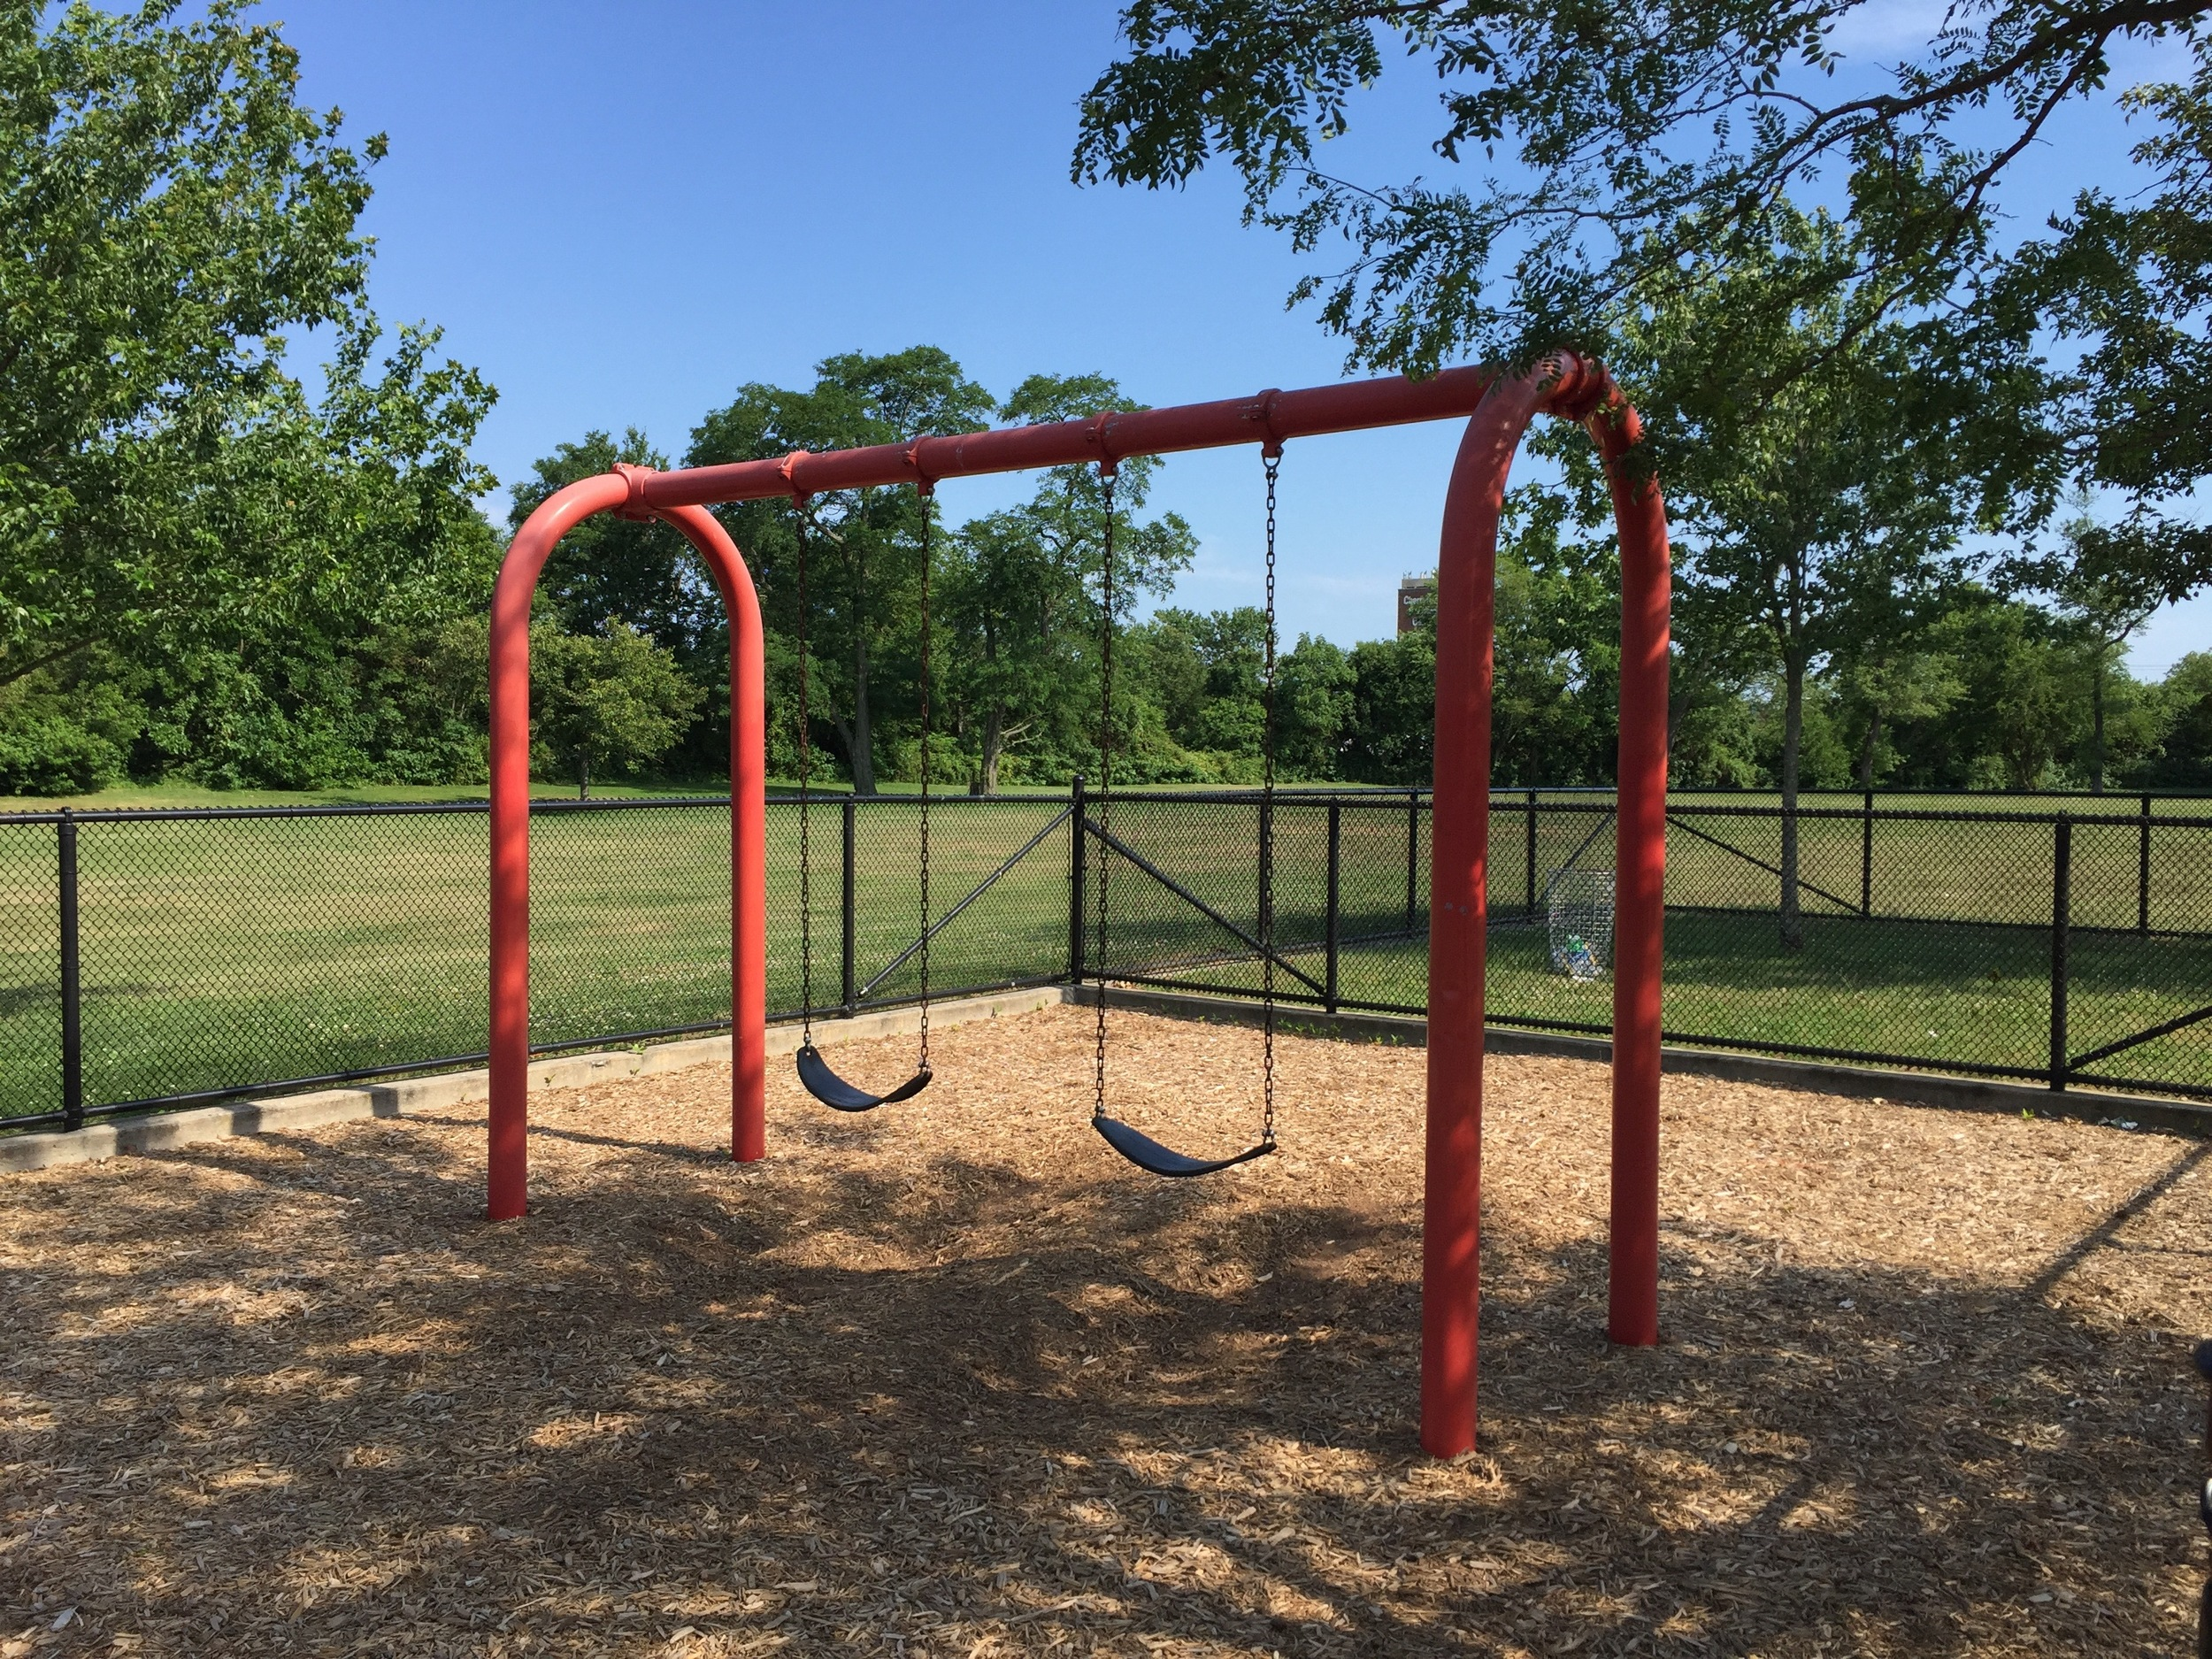 Swings at Duckpond Dr Park